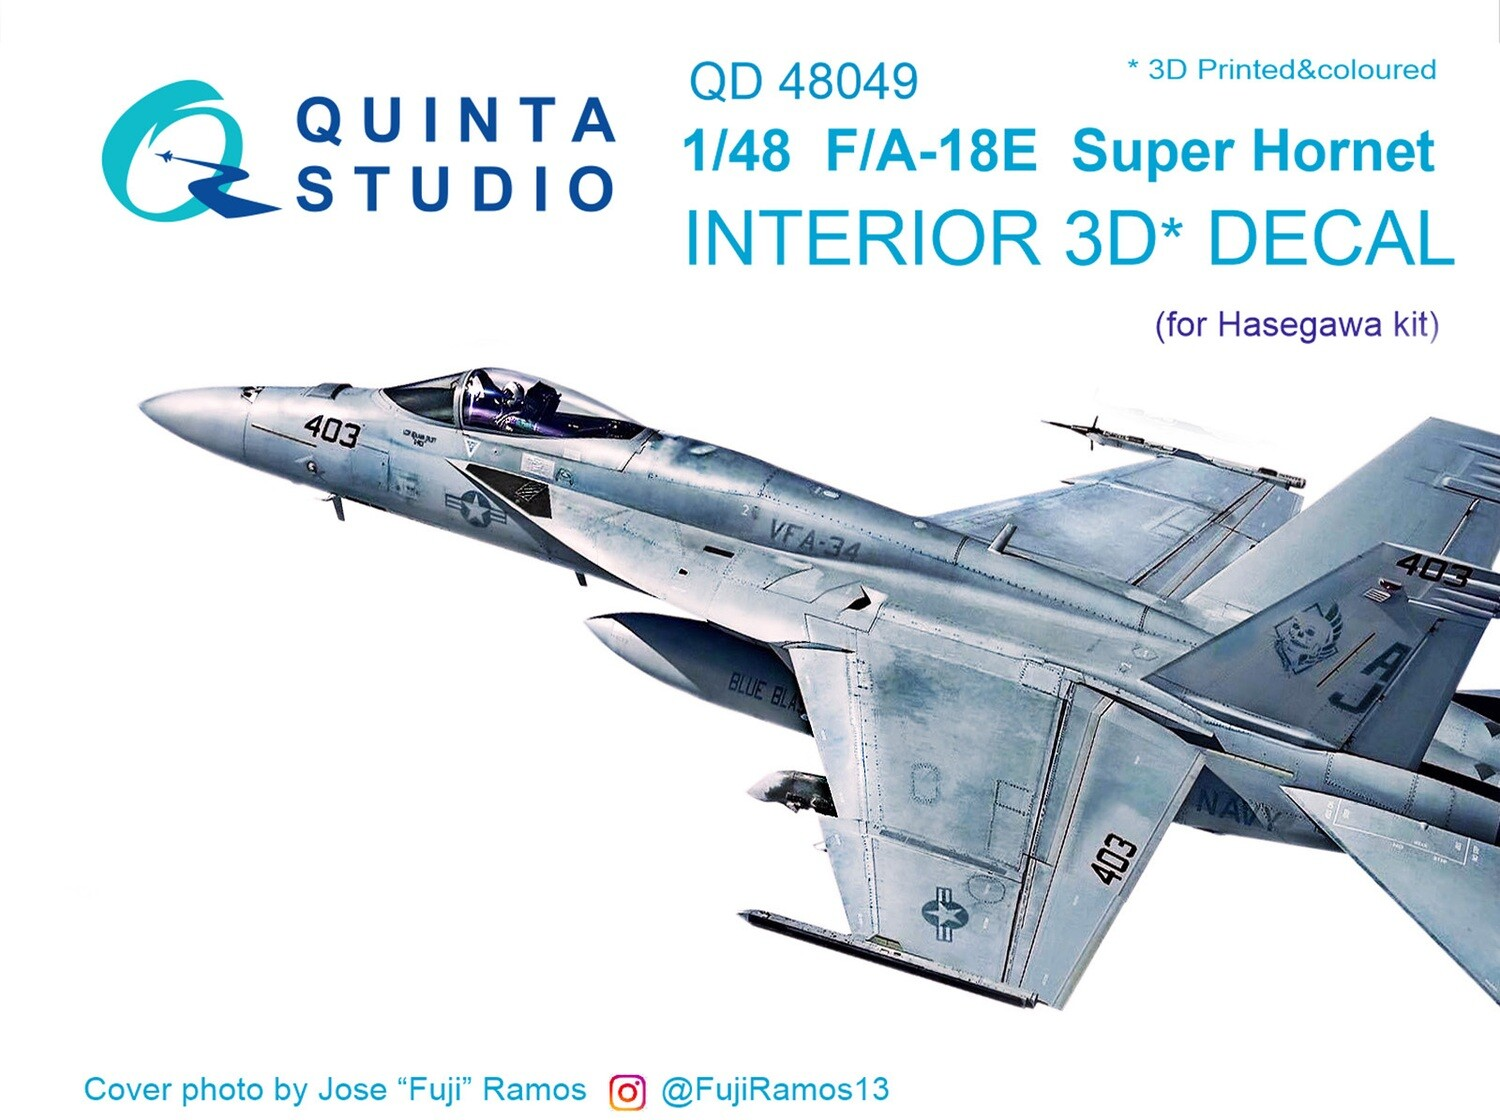 Quinta studio 1/48 F/A-18E Hornet 3D-Printed & colored Interior on decal paper (for Hasegawa kit) QD48049